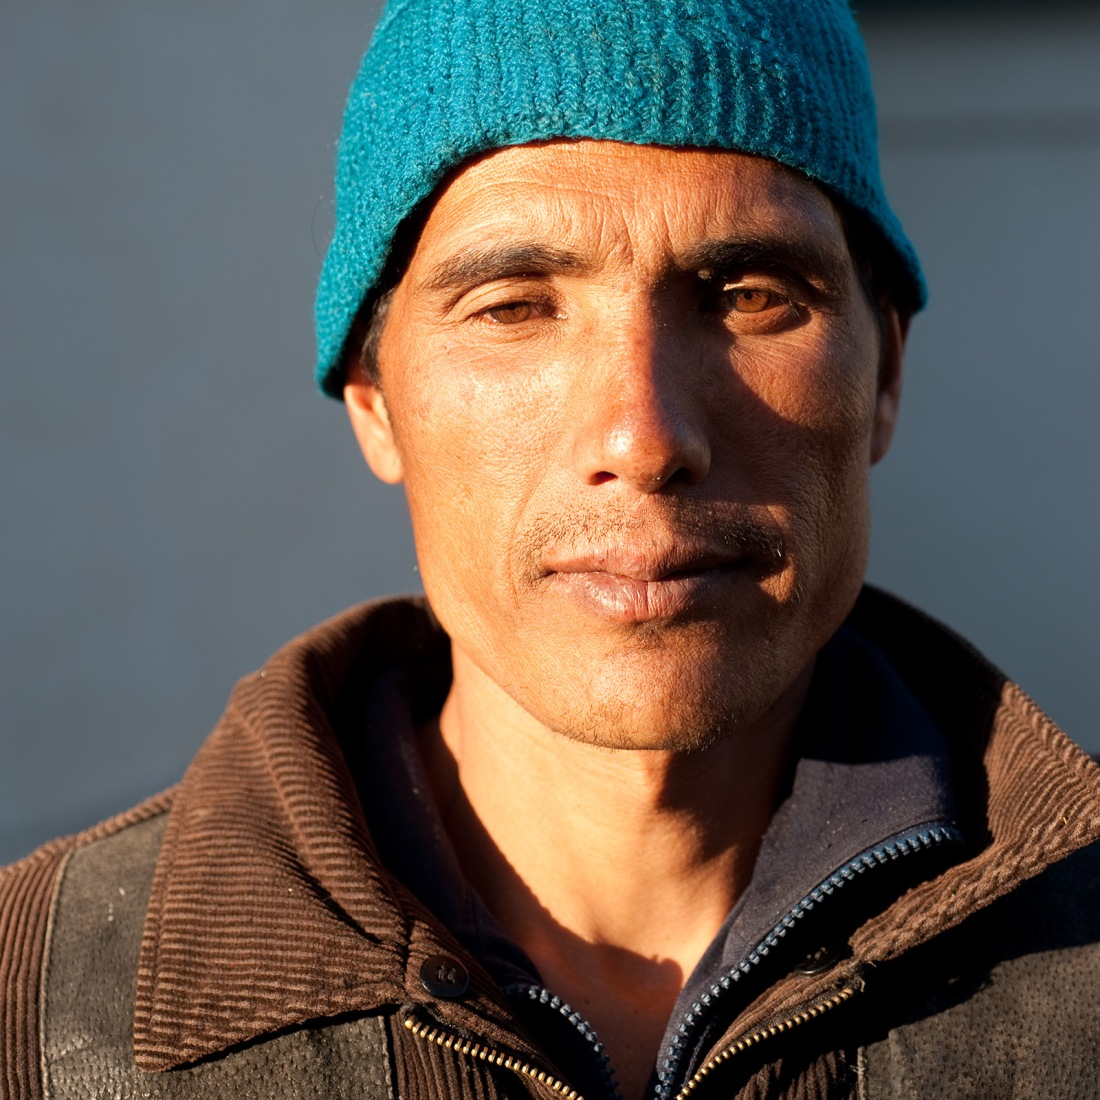 Pardeep, one of our porters, at Ghuttu on our last day.